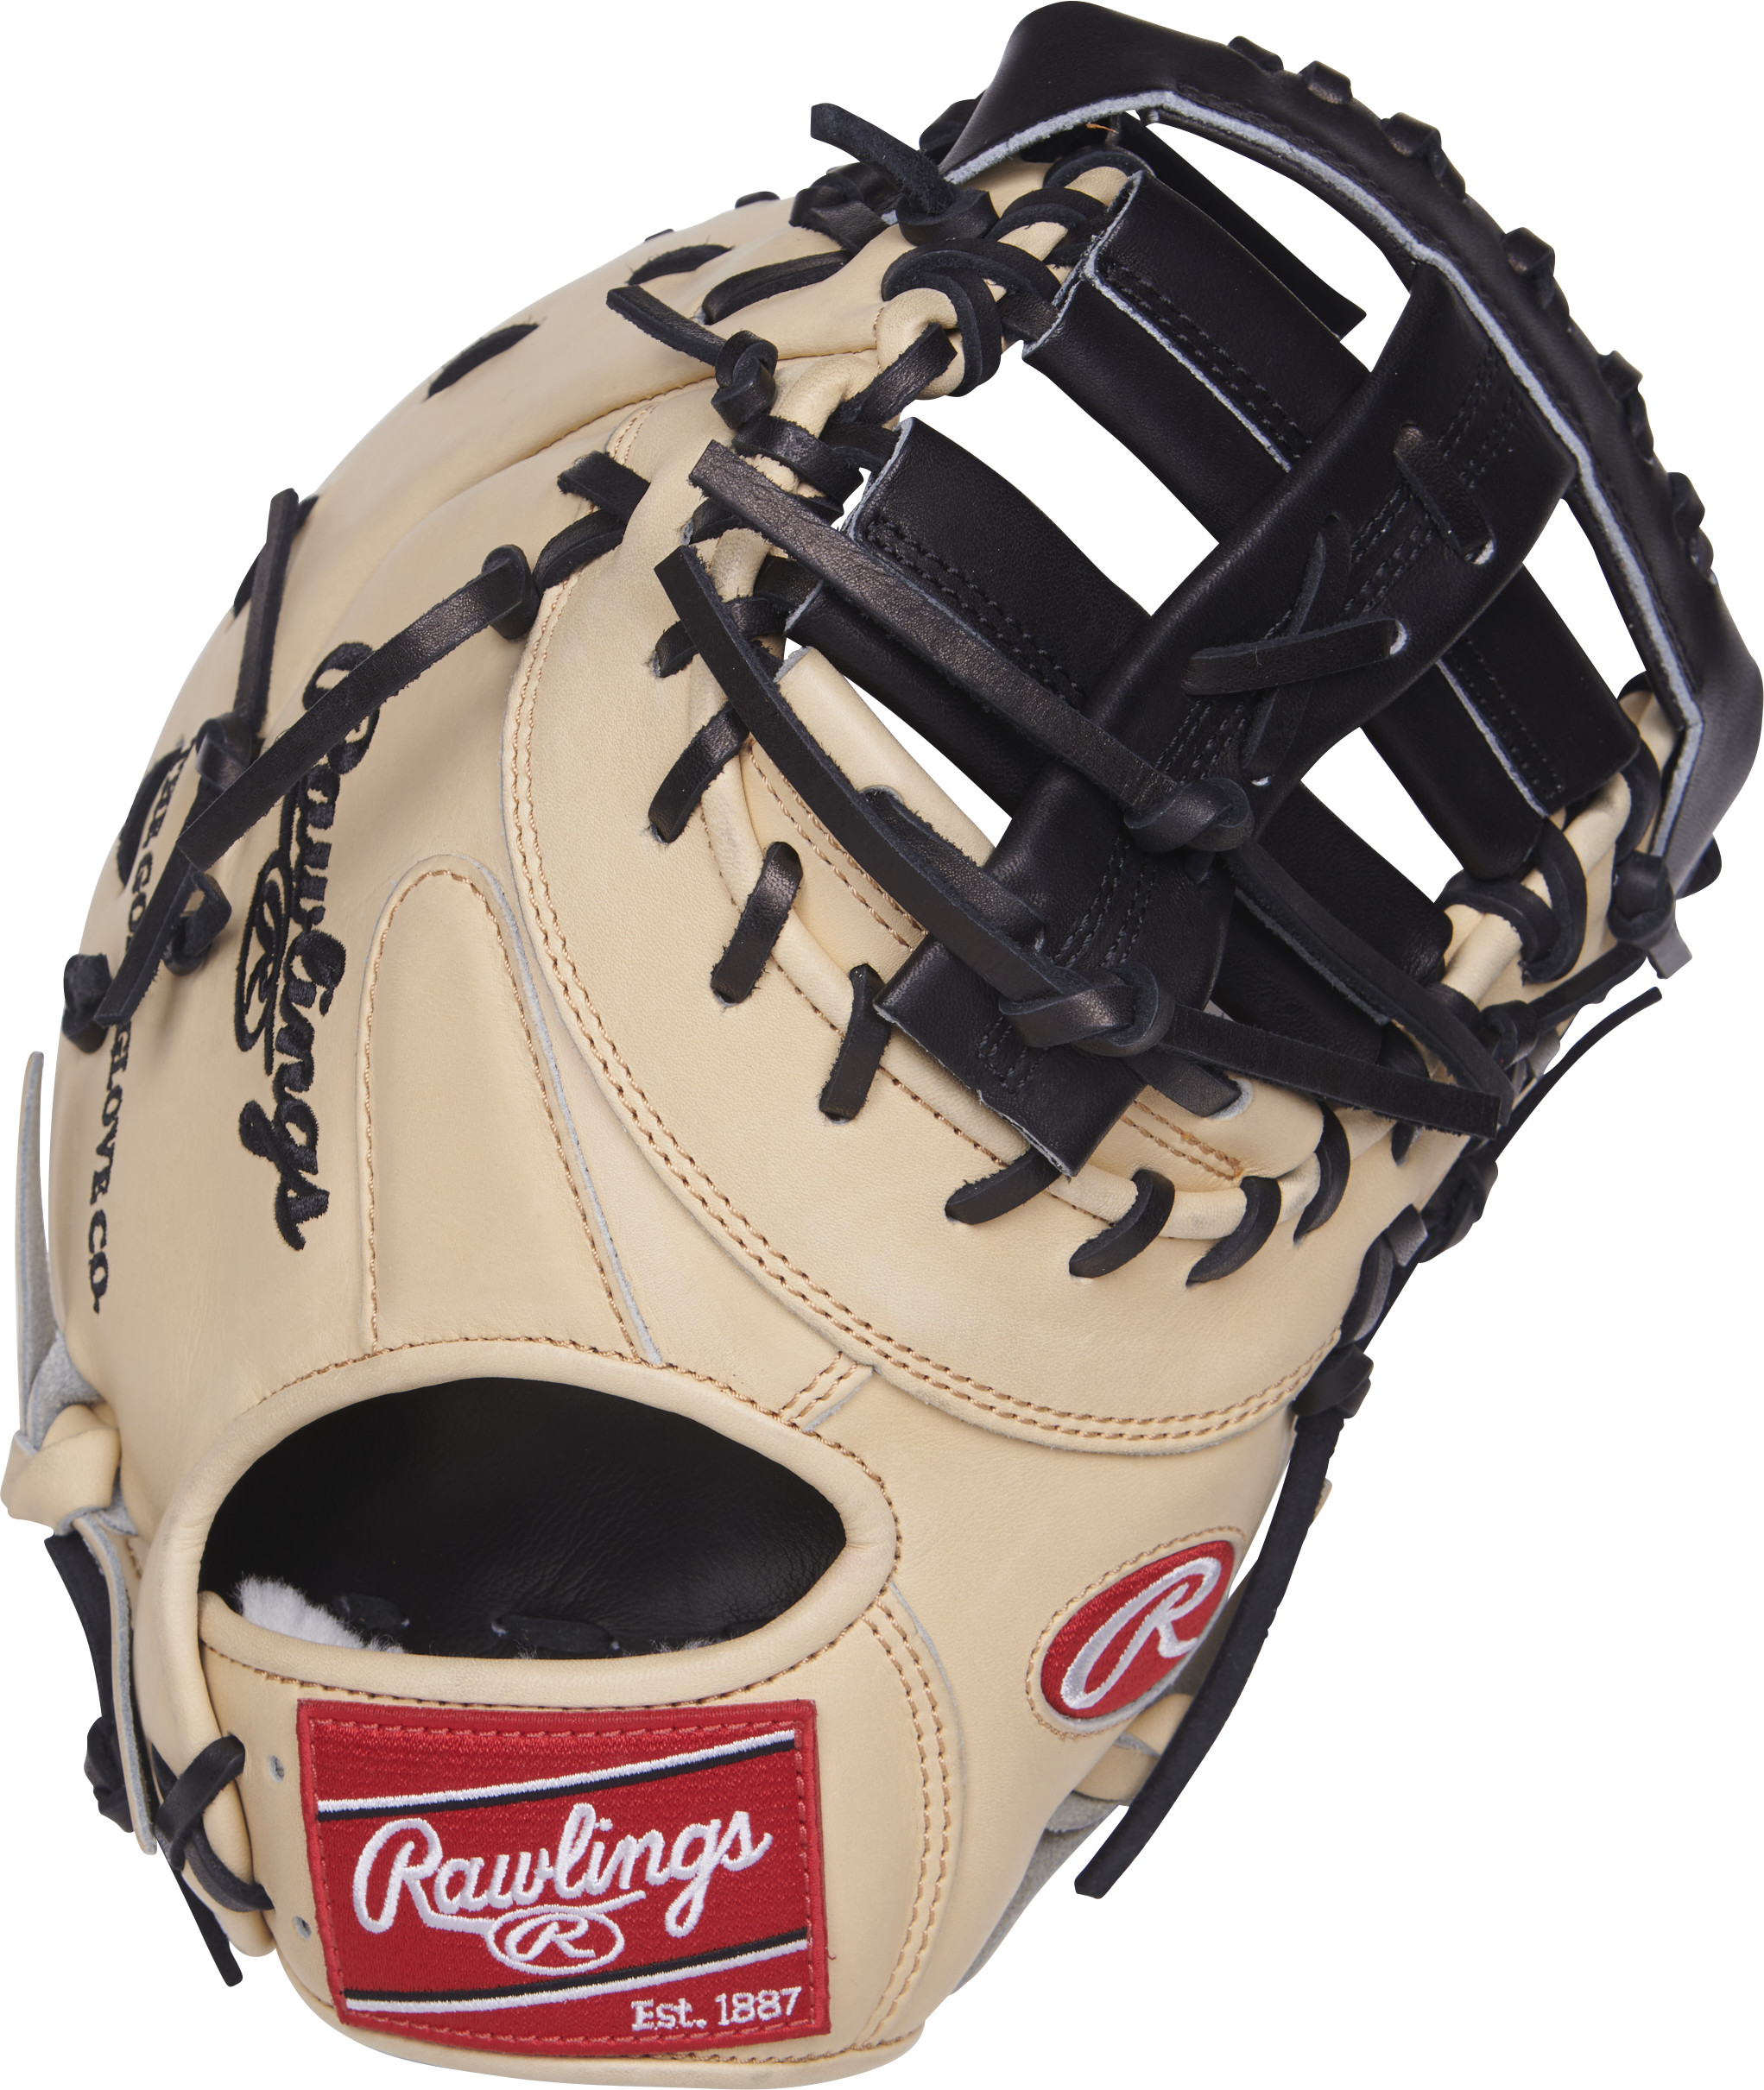 http://www.bestbatdeals.com/images/gloves/rawlings/PROSDCTC-2.jpg